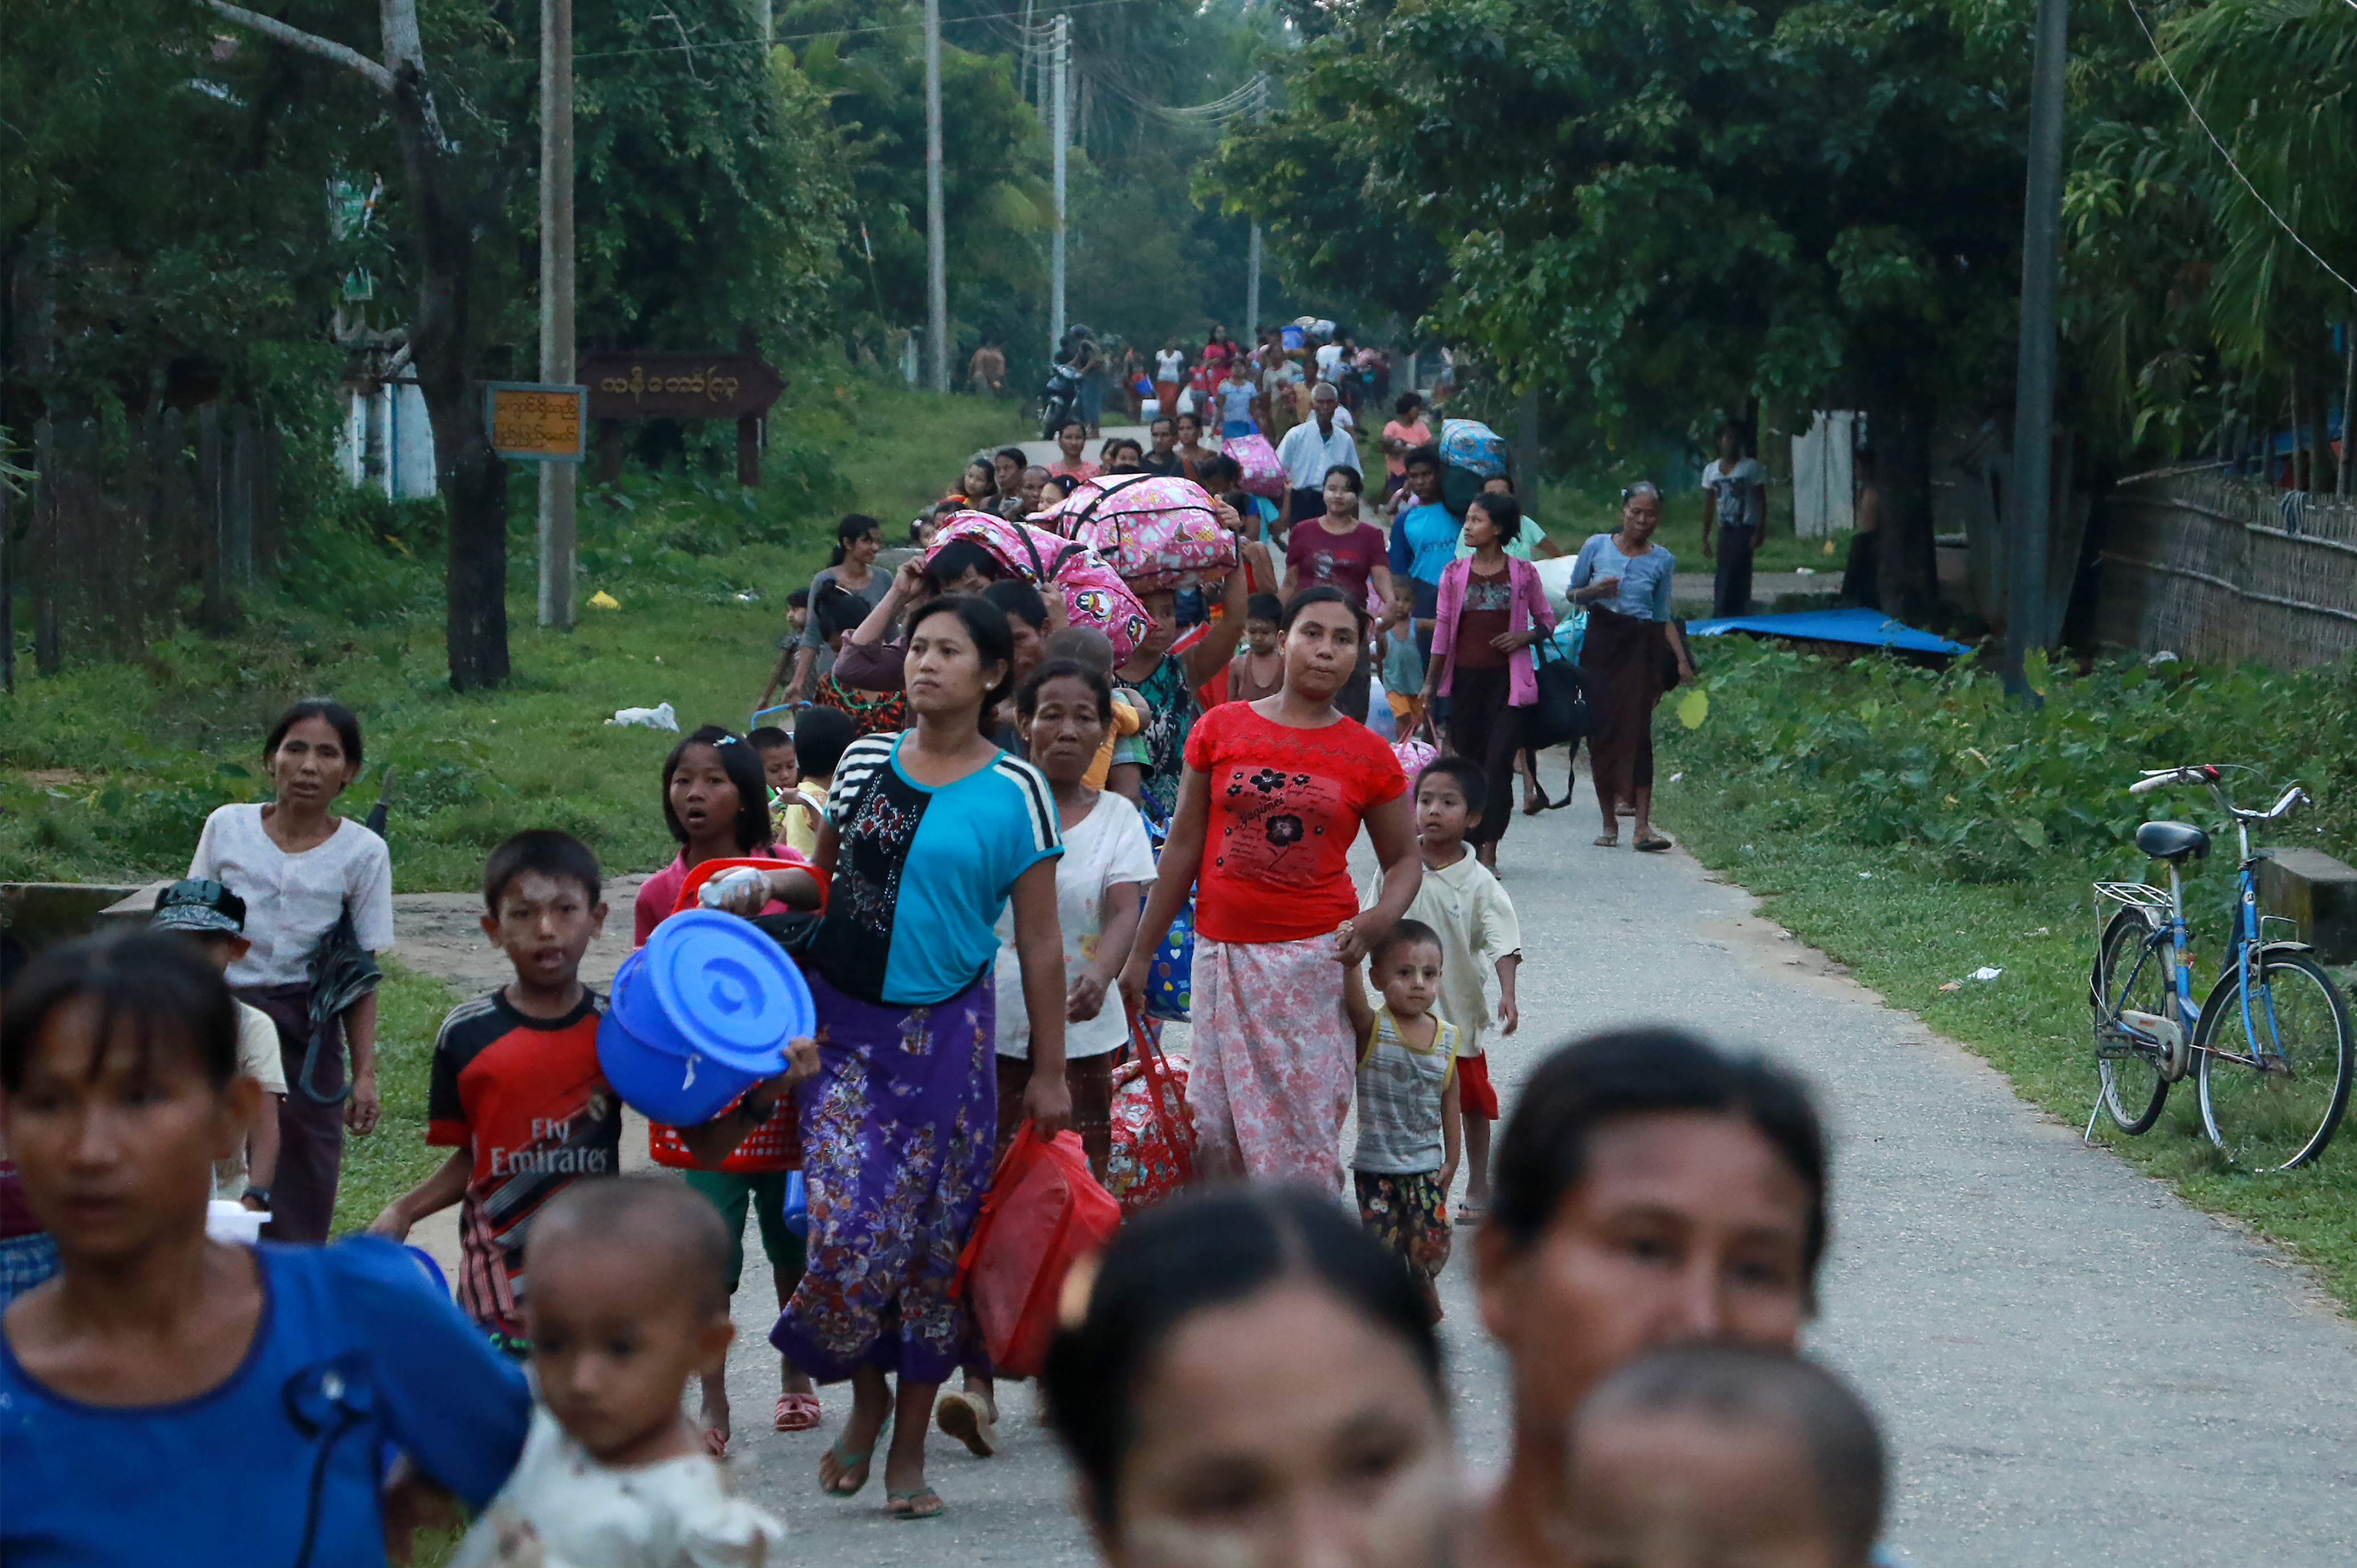 Residents displaced by conflict flee from Maungdaw, in Burma's Rakhine state, on Oct. 13, 2016